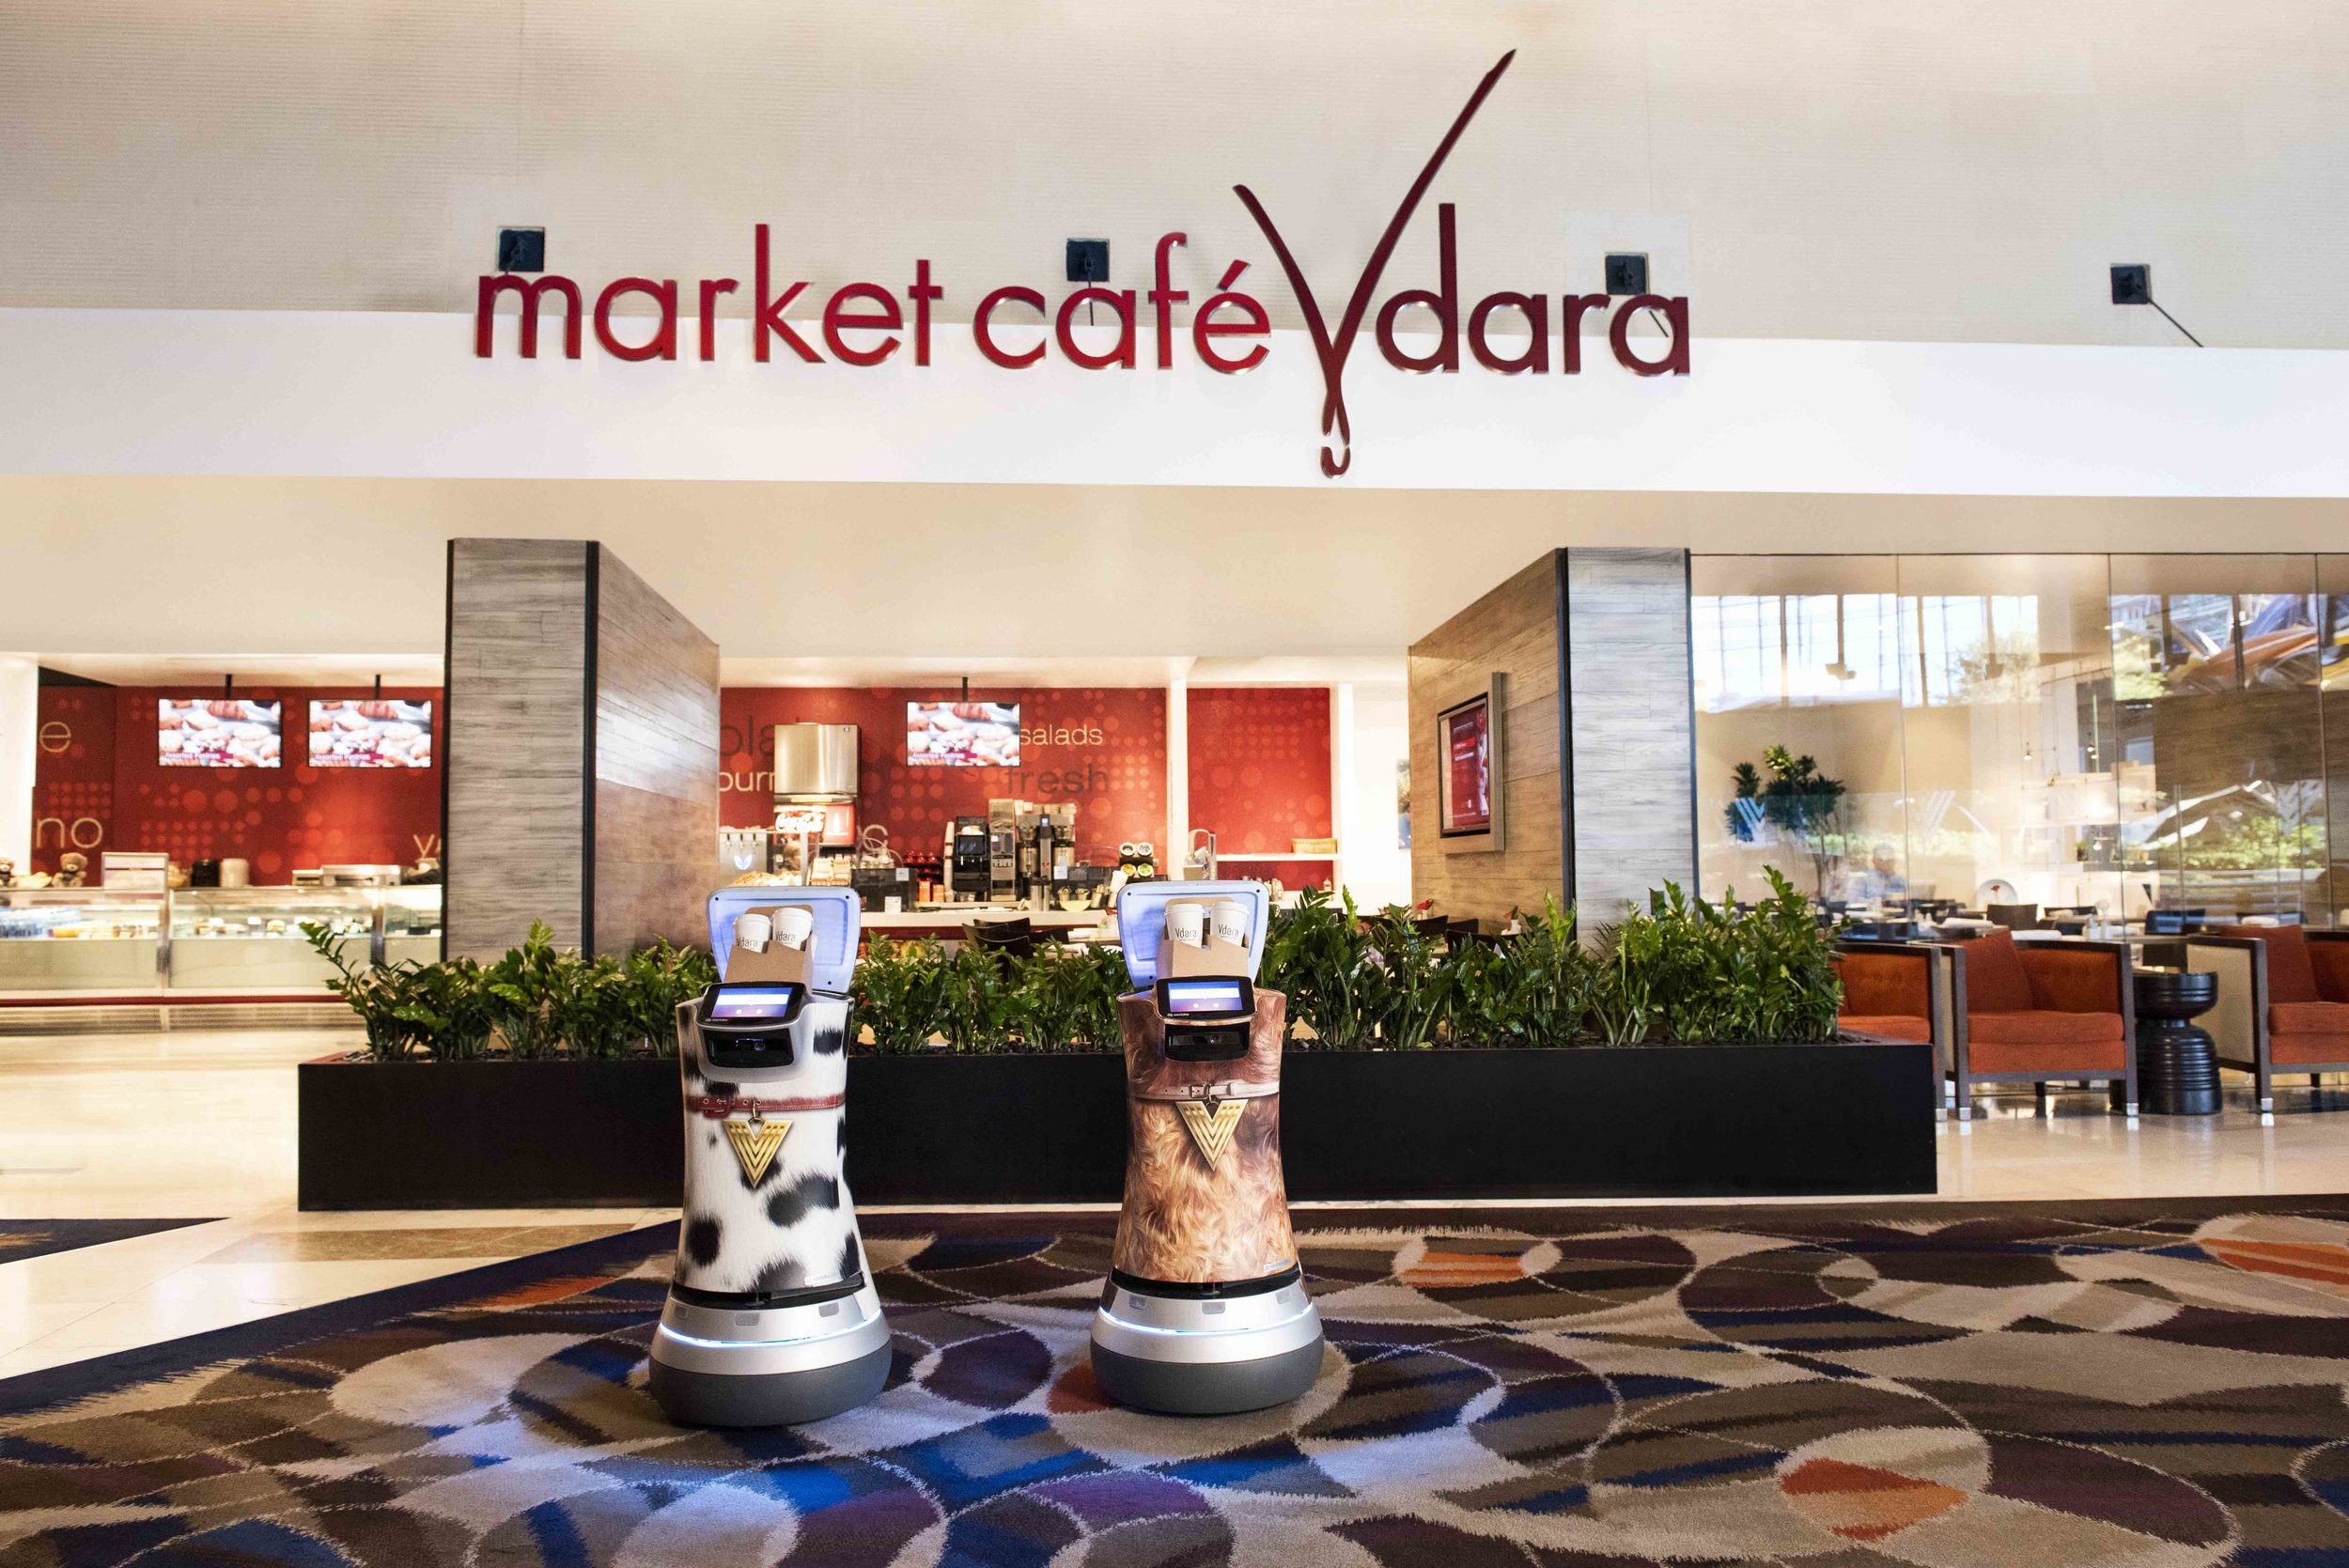 Robots, Fetch and Jett, are happy to deliver snacks and such directly to guests as they relax in their suites.